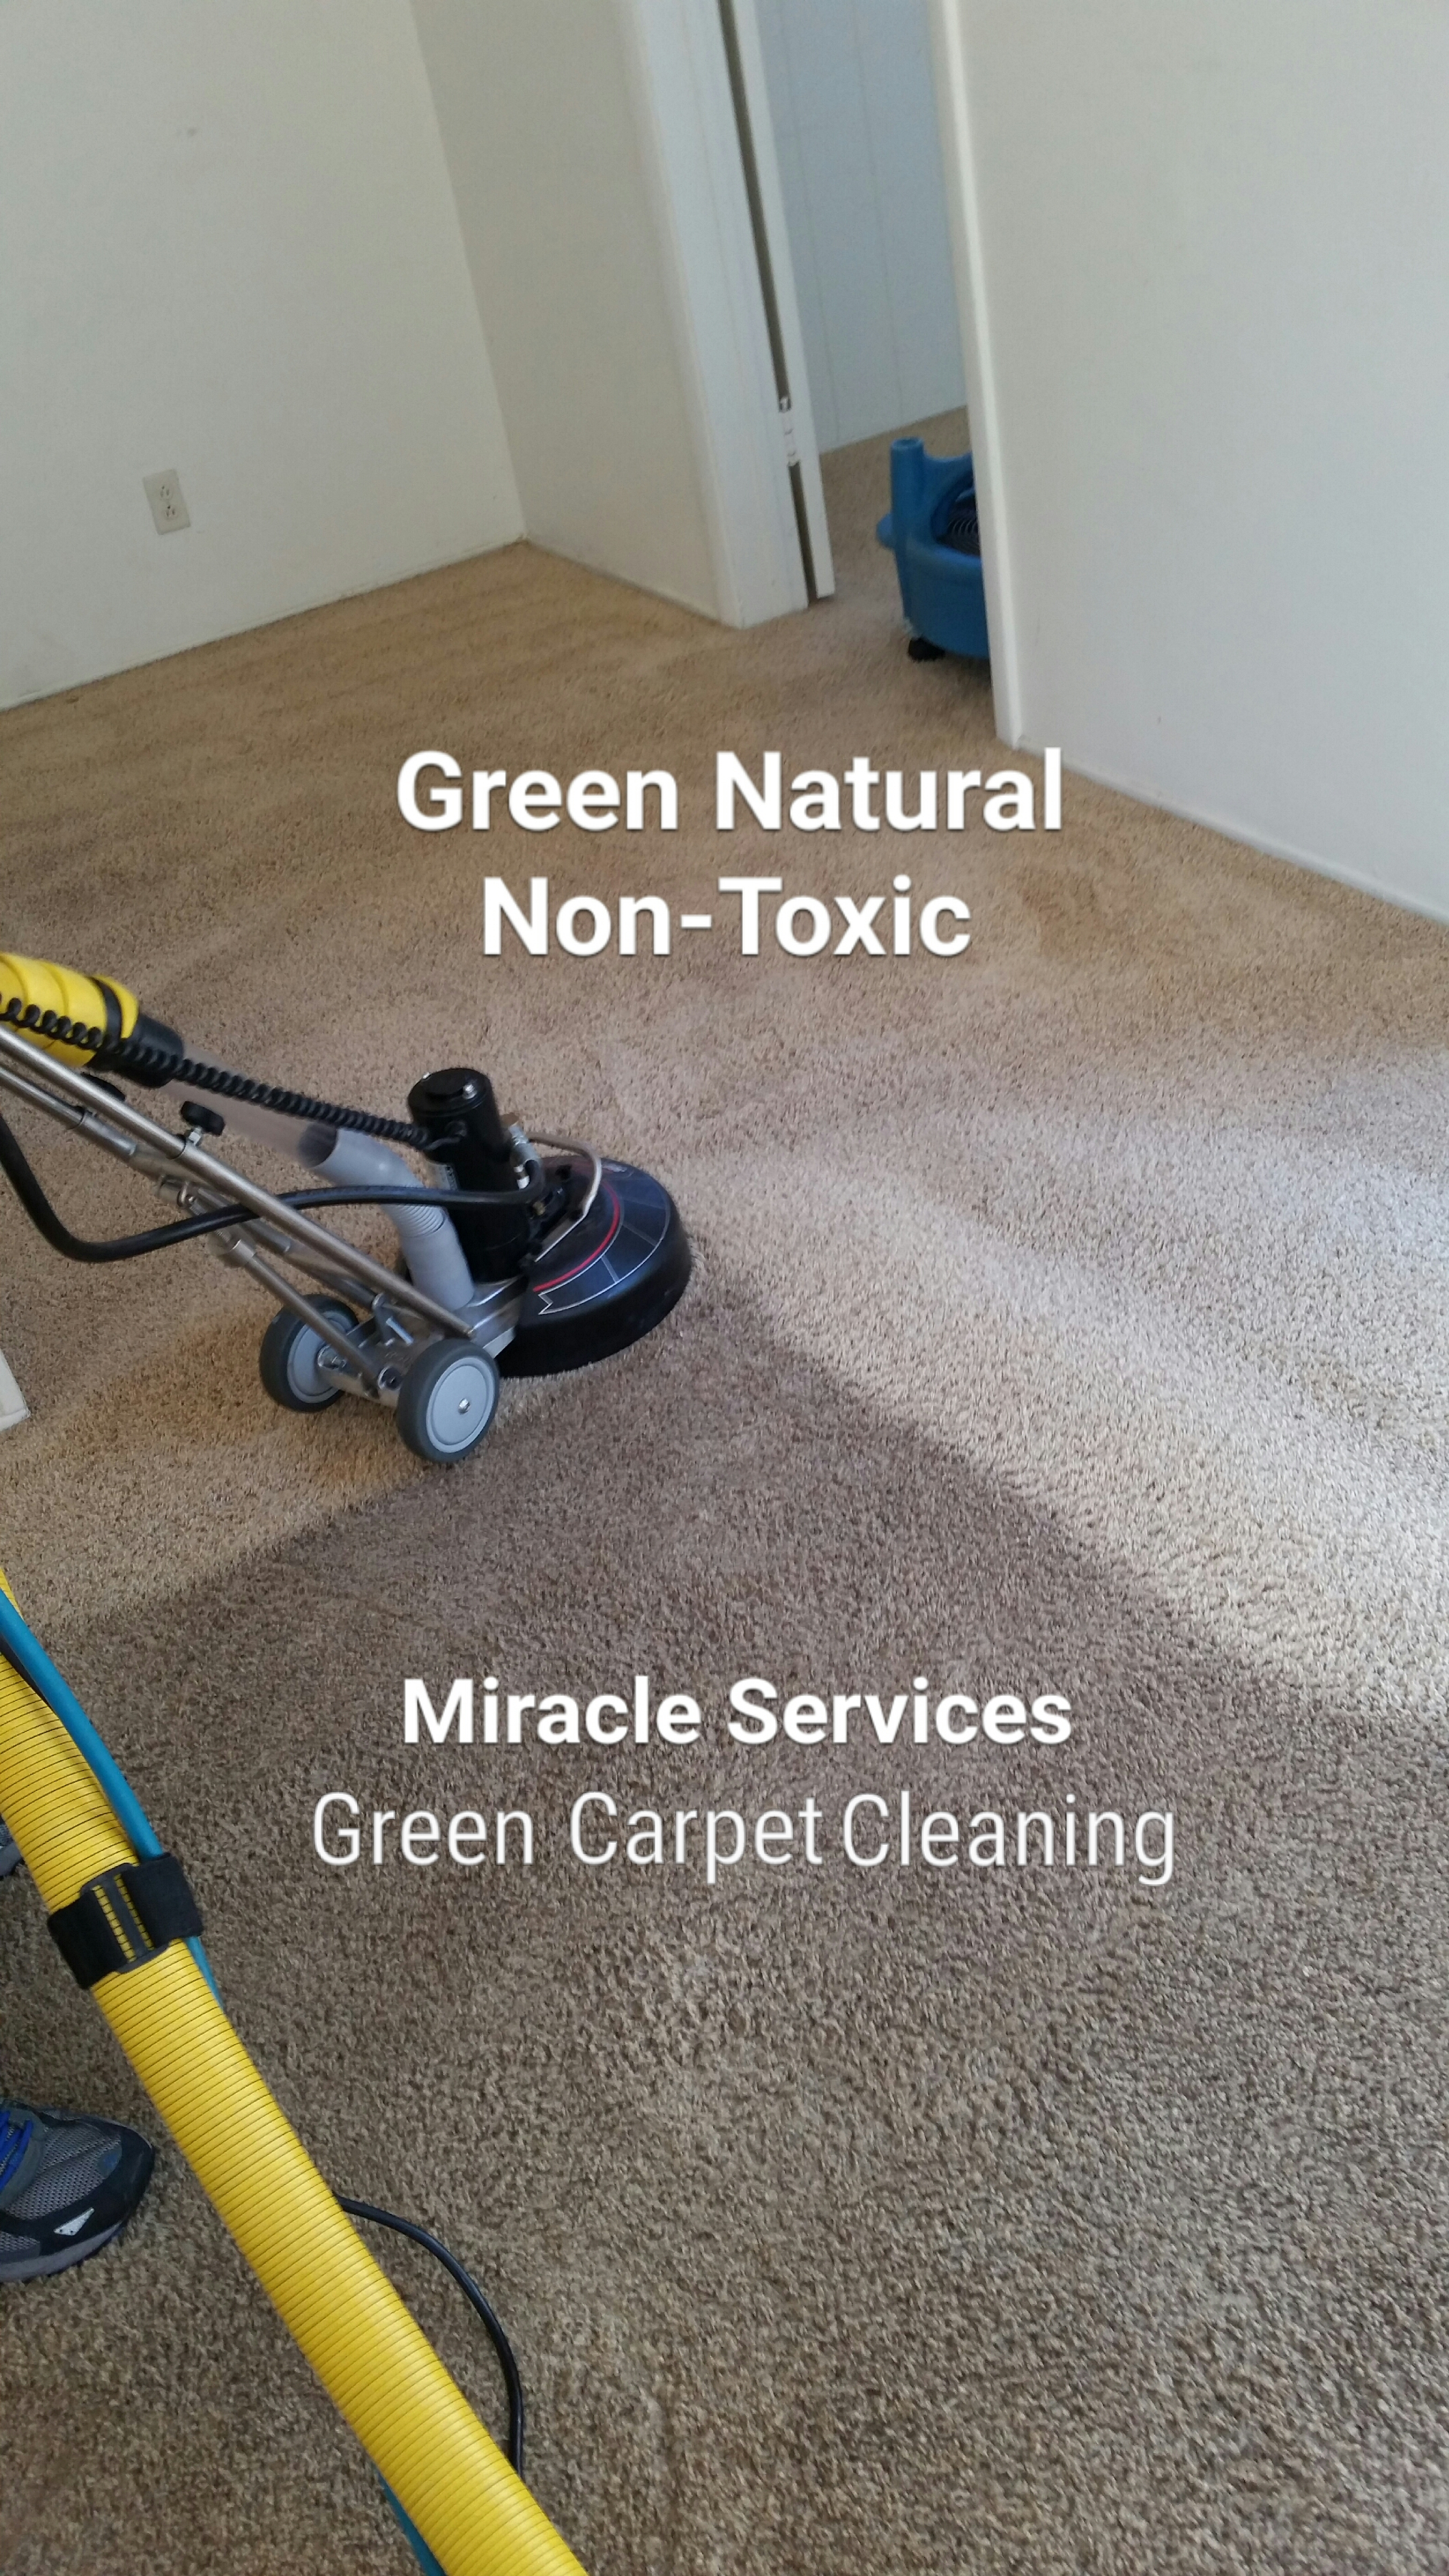 Rotovac carpet cleaning